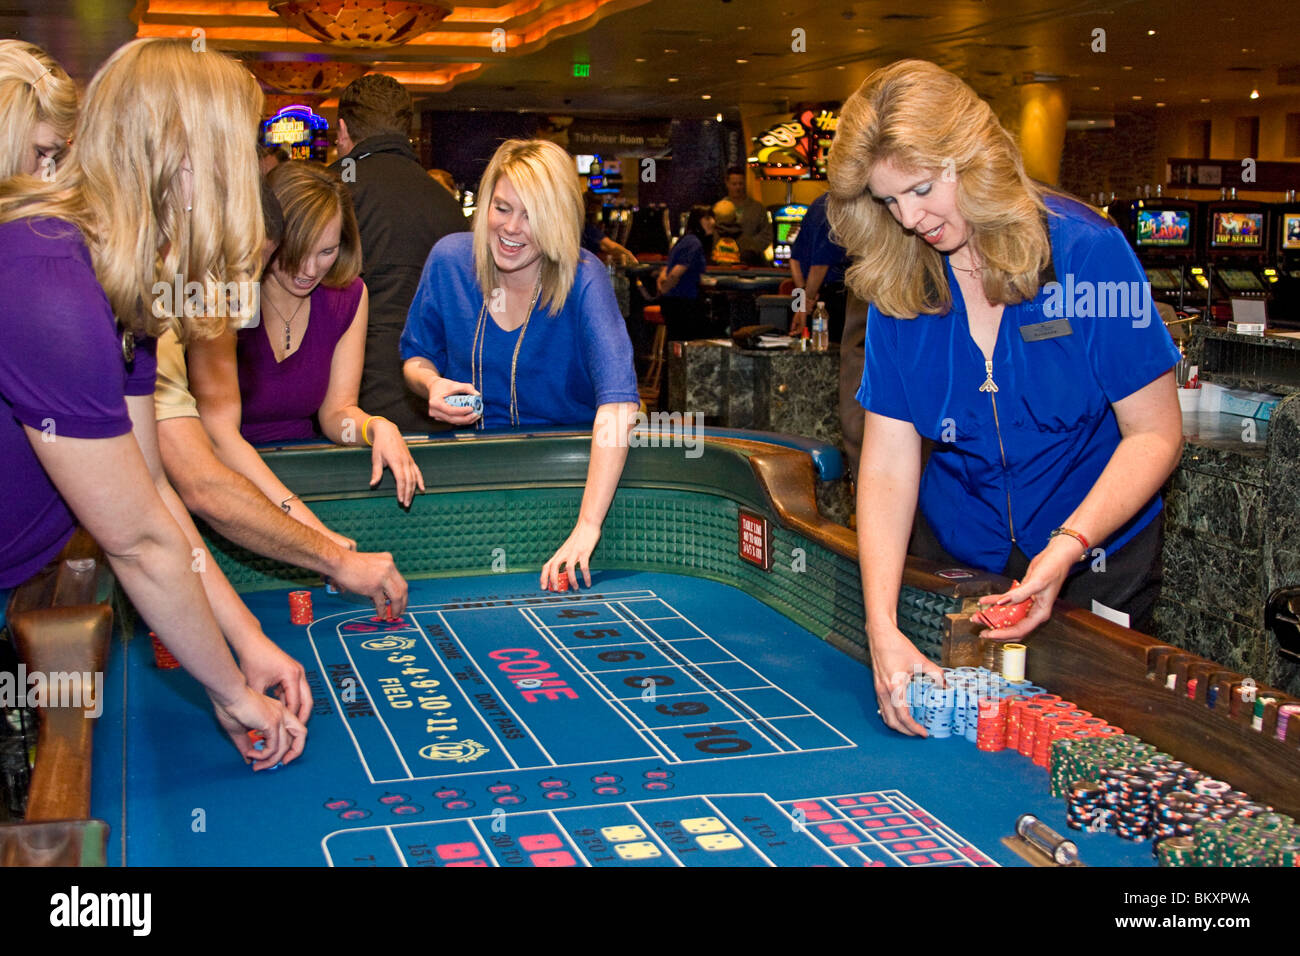 Swiss casinos services ag